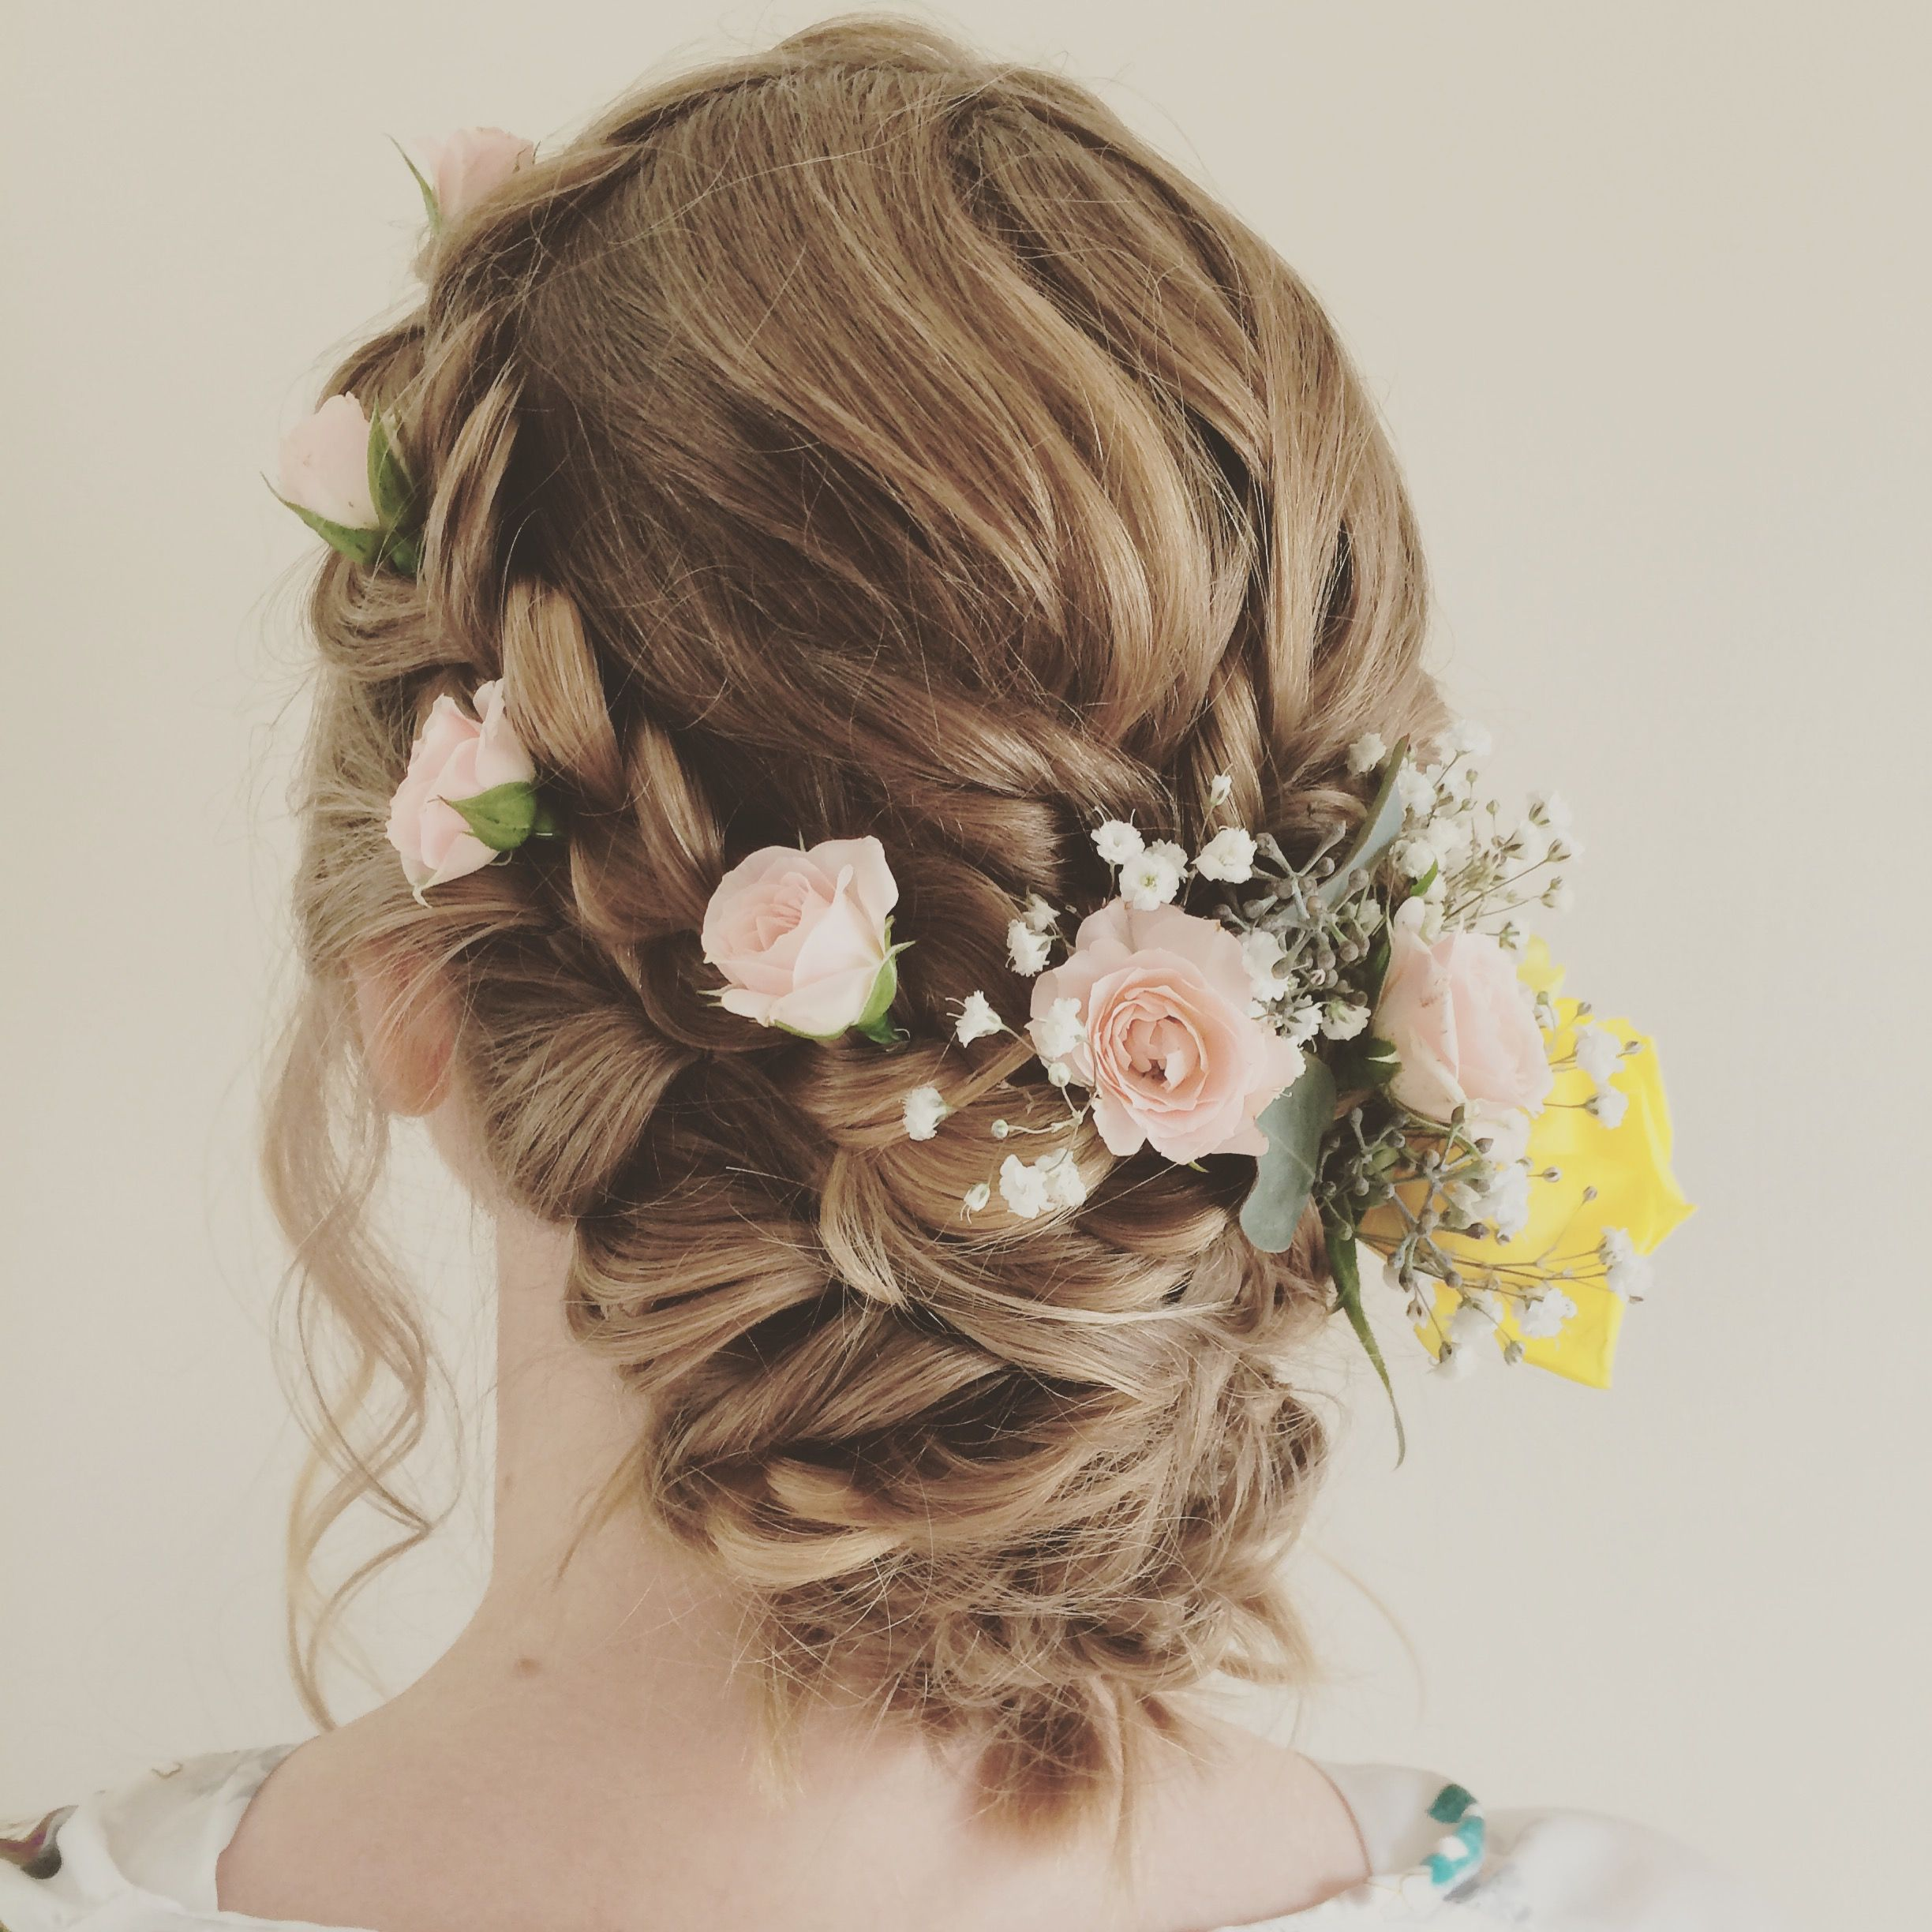 51 Romantic Wedding Hairstyles: Hairstyles With Fresh Flowers